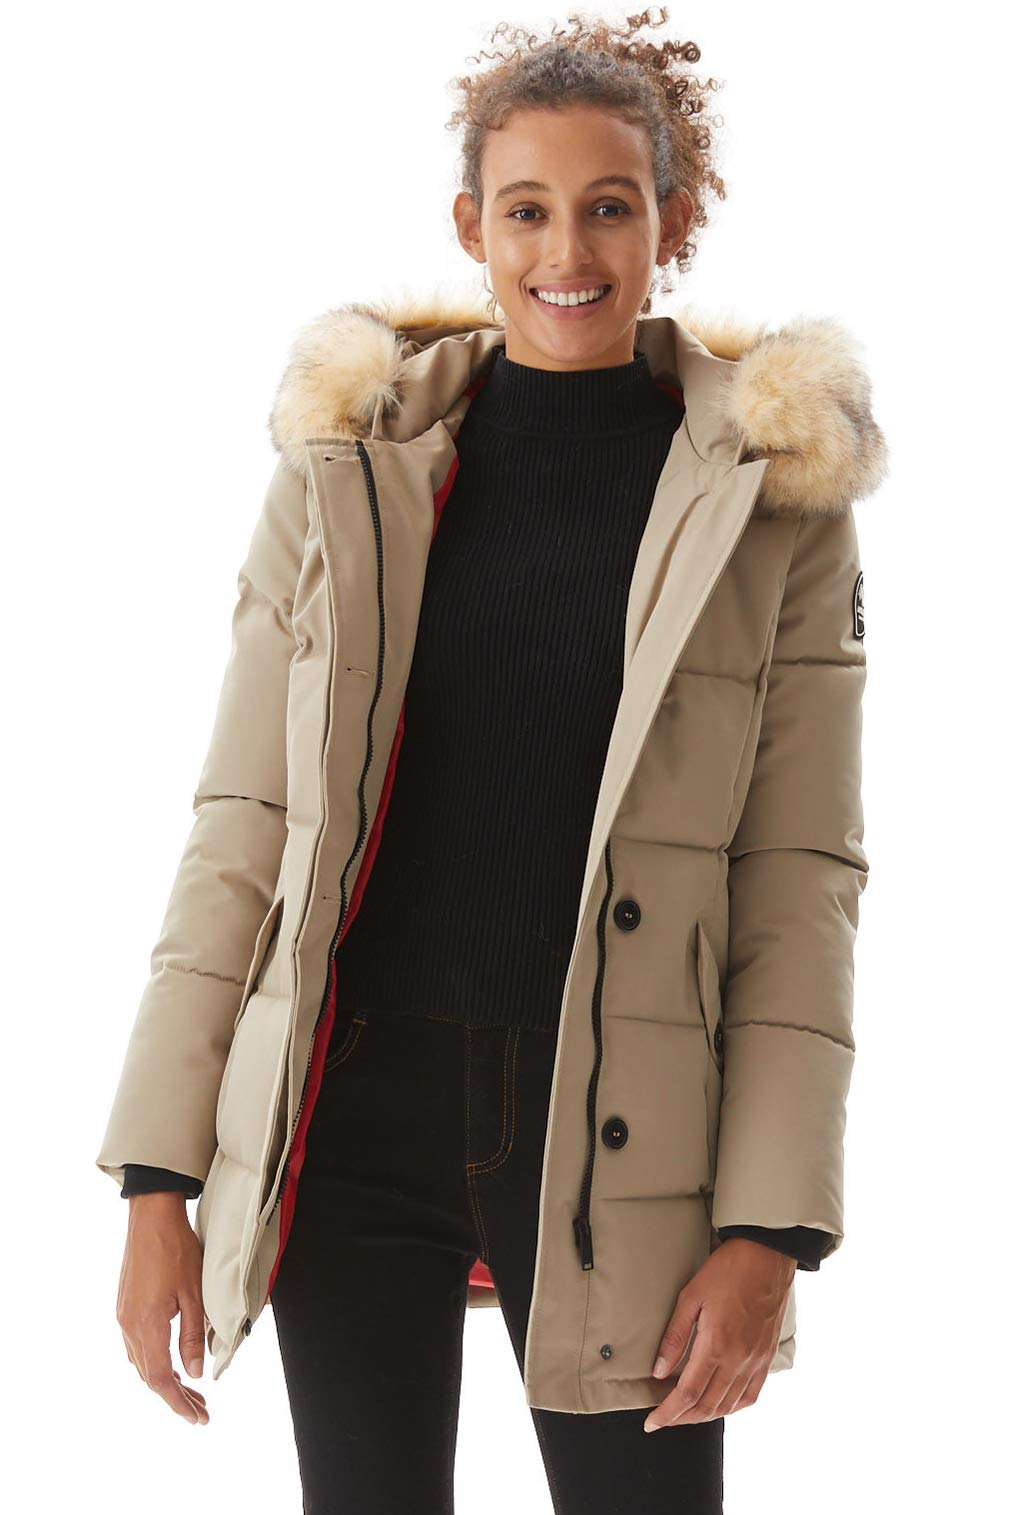 Molemsx Heavy Winter Coat for Women, Womens Classic Club Padded Jacket Warm Puffer Coat Parka Jacket with Fur Trimmed Hood Beige X-Large by Molemsx